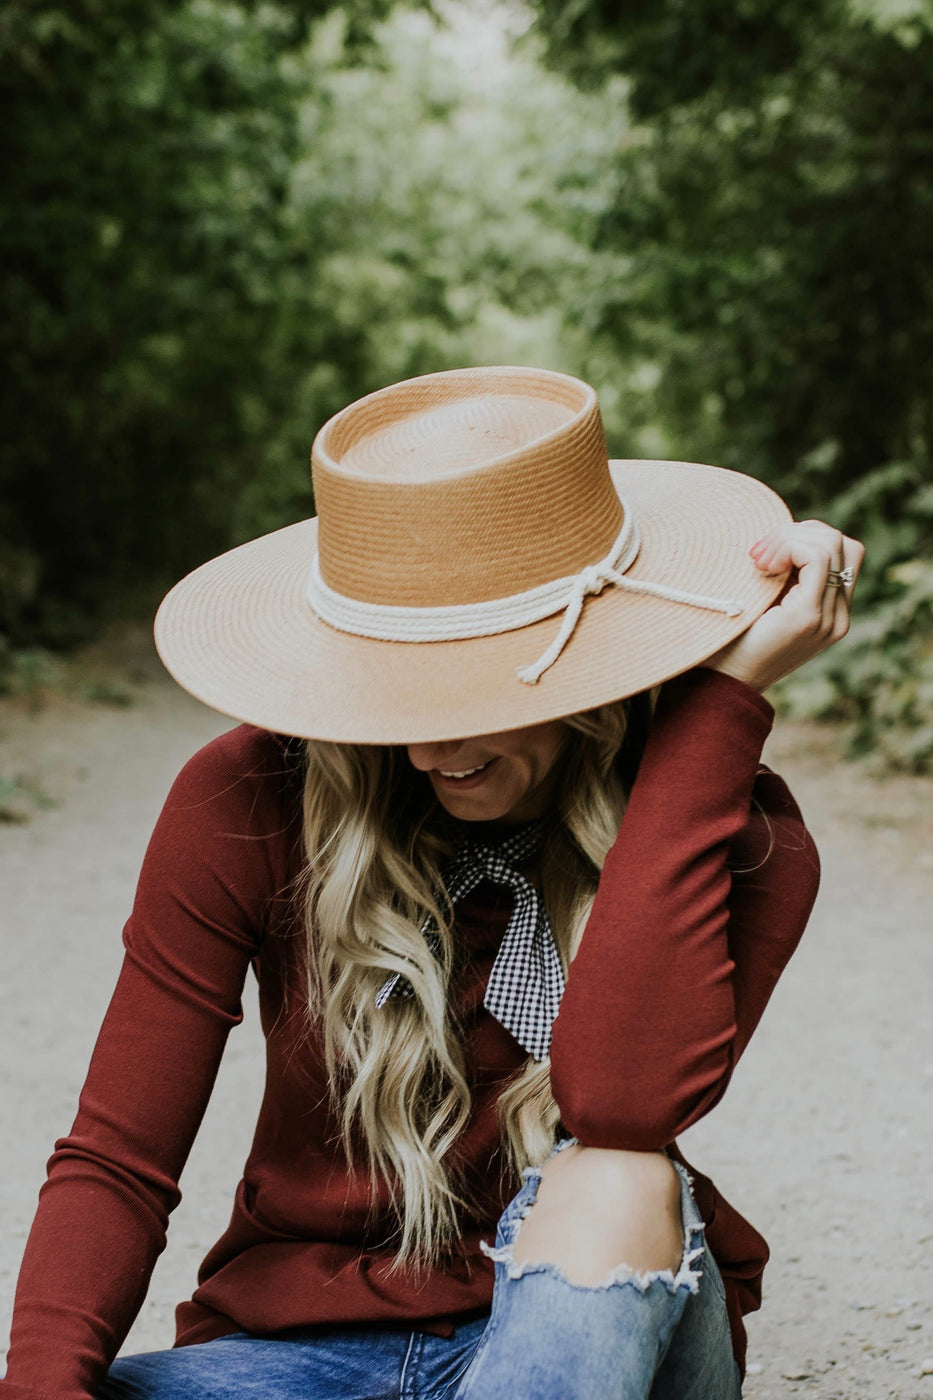 Women's Fashionable Straw Hat | ROOLEE